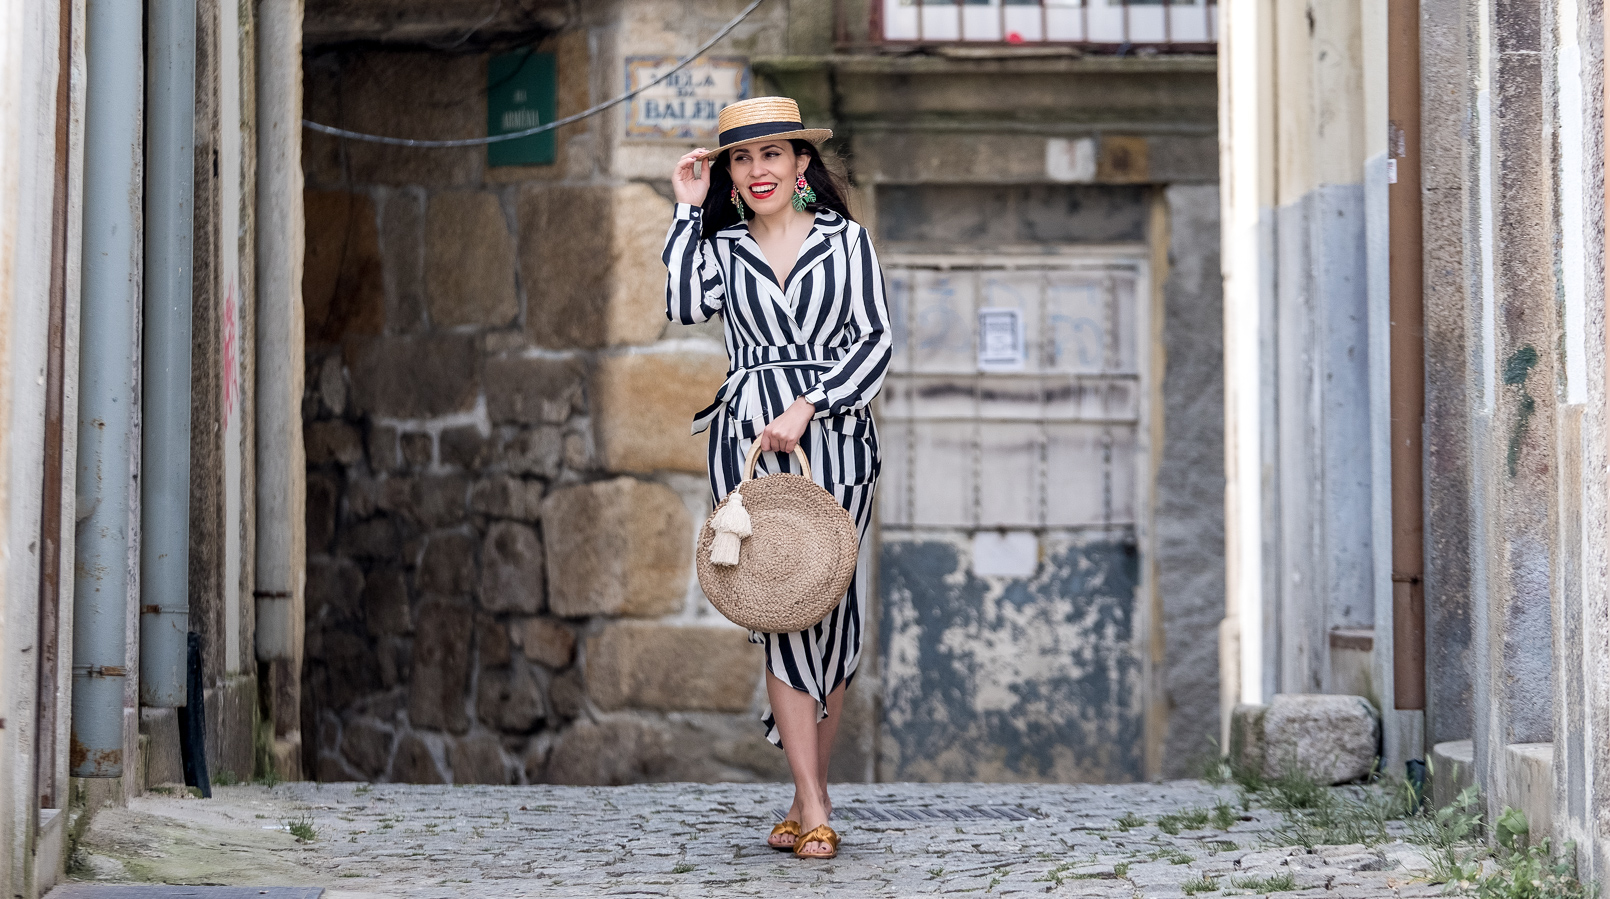 Le Fashionaire My favorite stripes dress is less than 25 euros stripes dark blue white maxi shein dress straw black ribbon stradivarius hat satin dark yellow slides green leaf flowers bold earrings zara 0554F EN